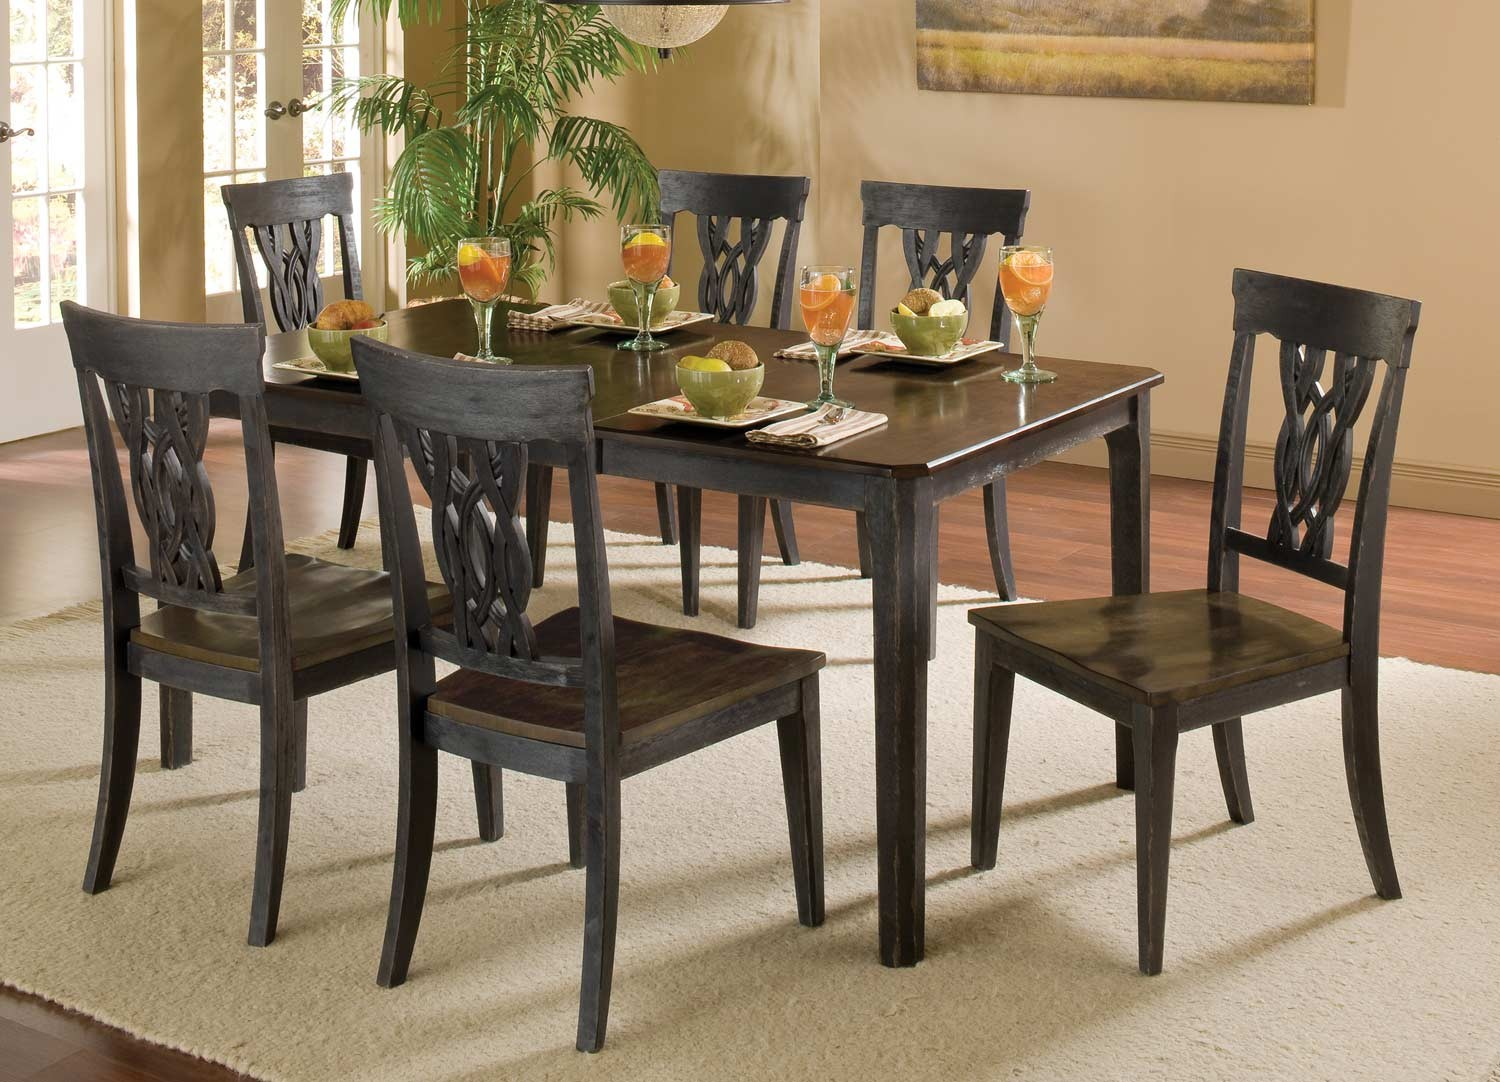 Hillsdale Lafayette 7 PC Dining Set - Black Gray with Walnut